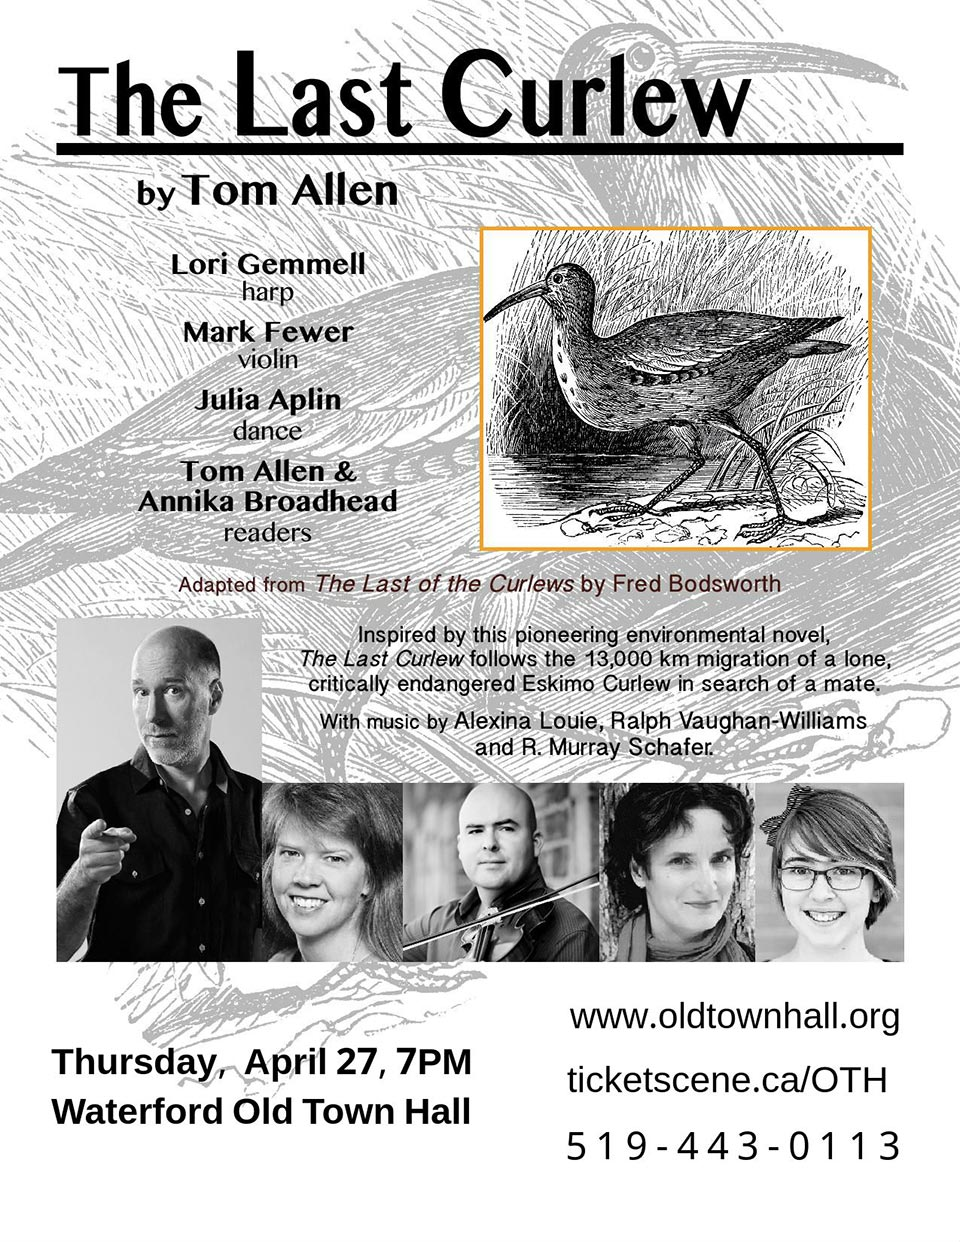 Tom Allen's The Last Curlew at Waterford Old Town Hall AP 27, 2017